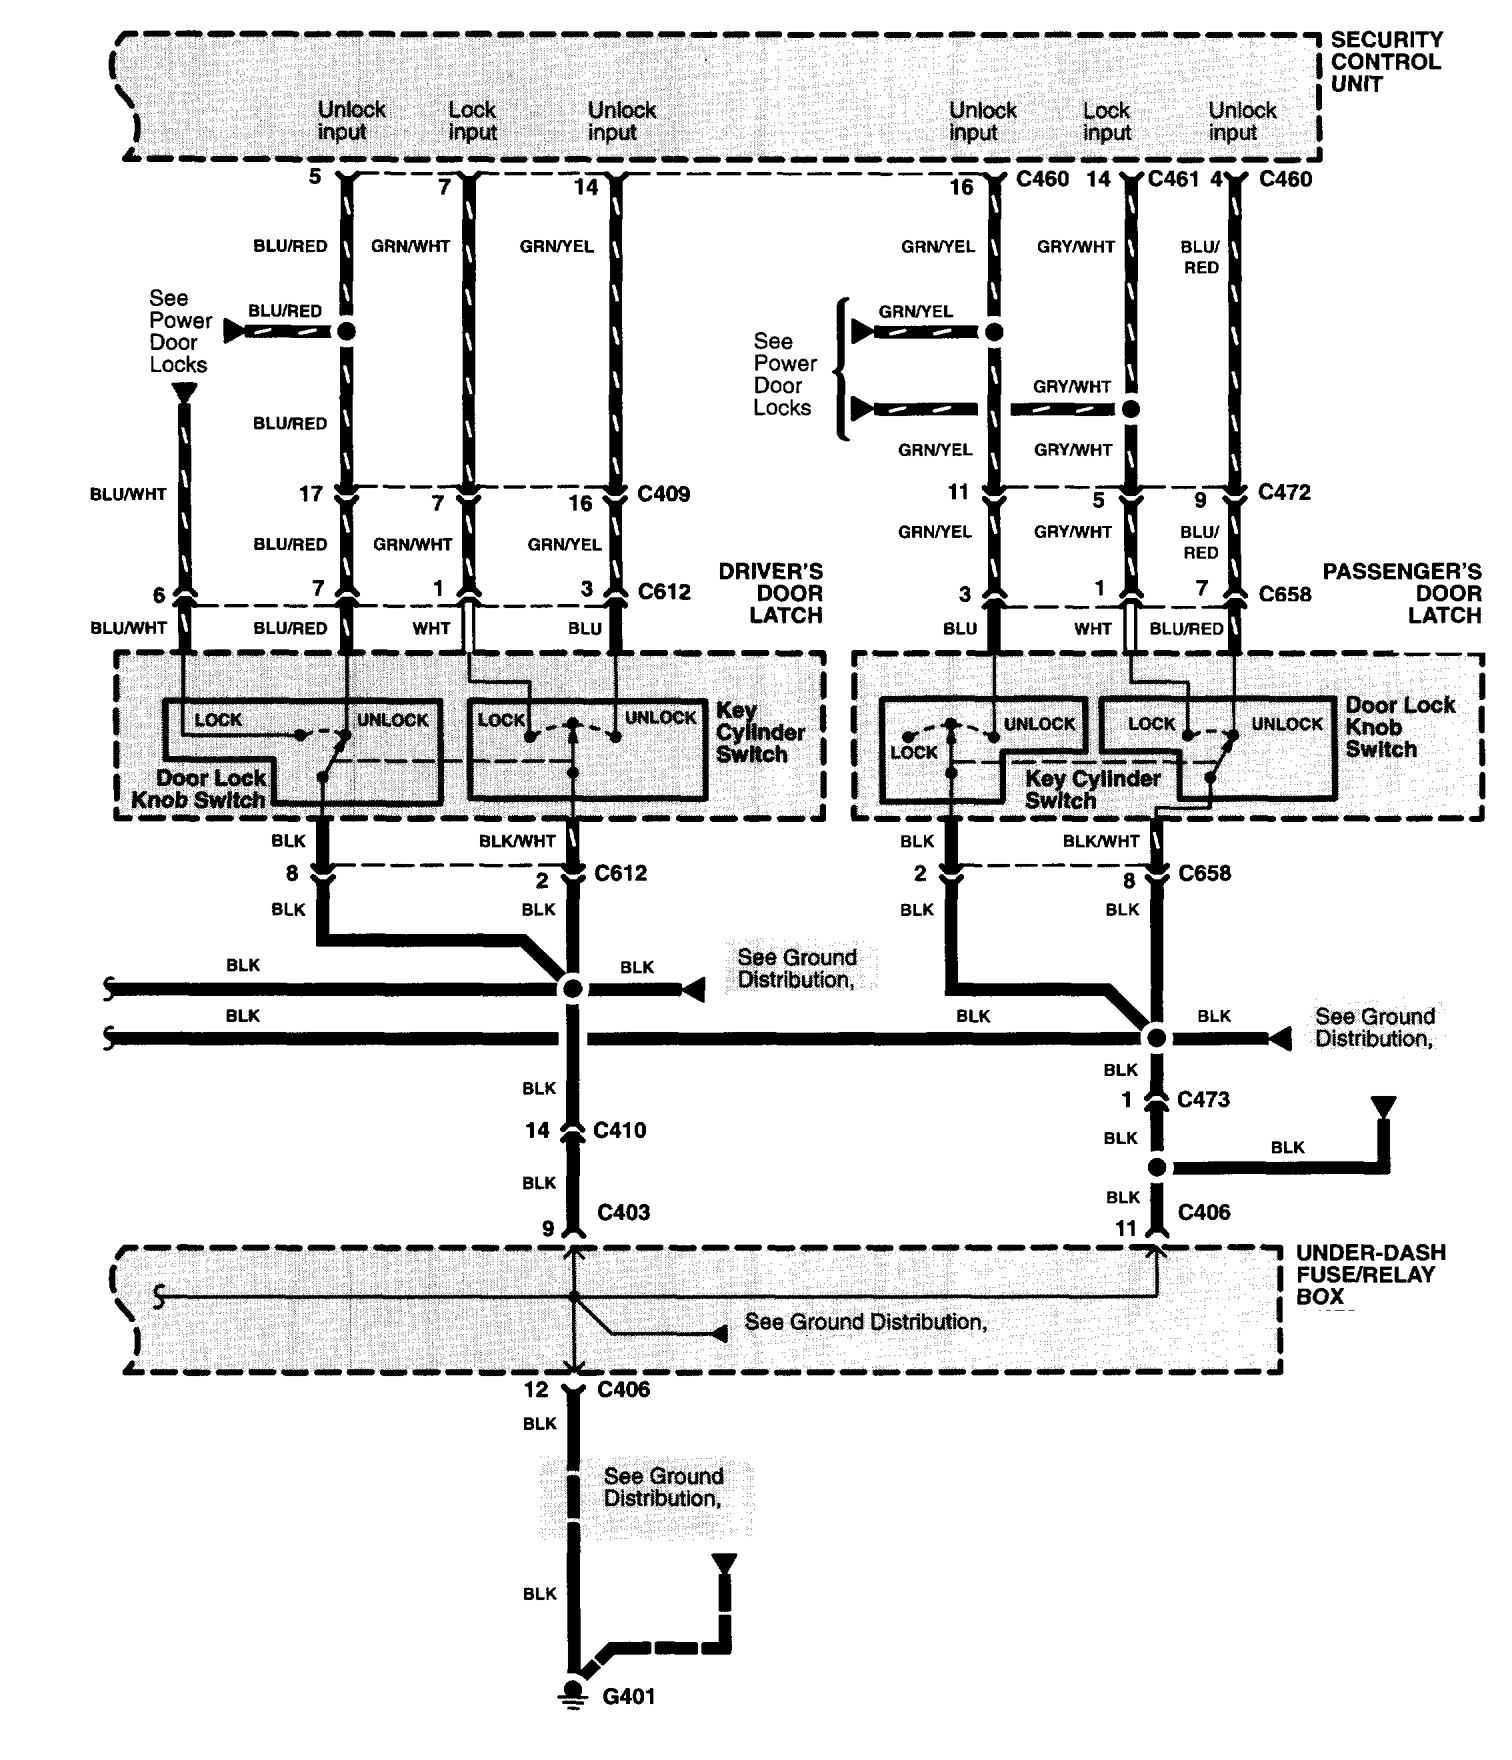 Karr Wiring Diagram - Wiring Diagram Shw